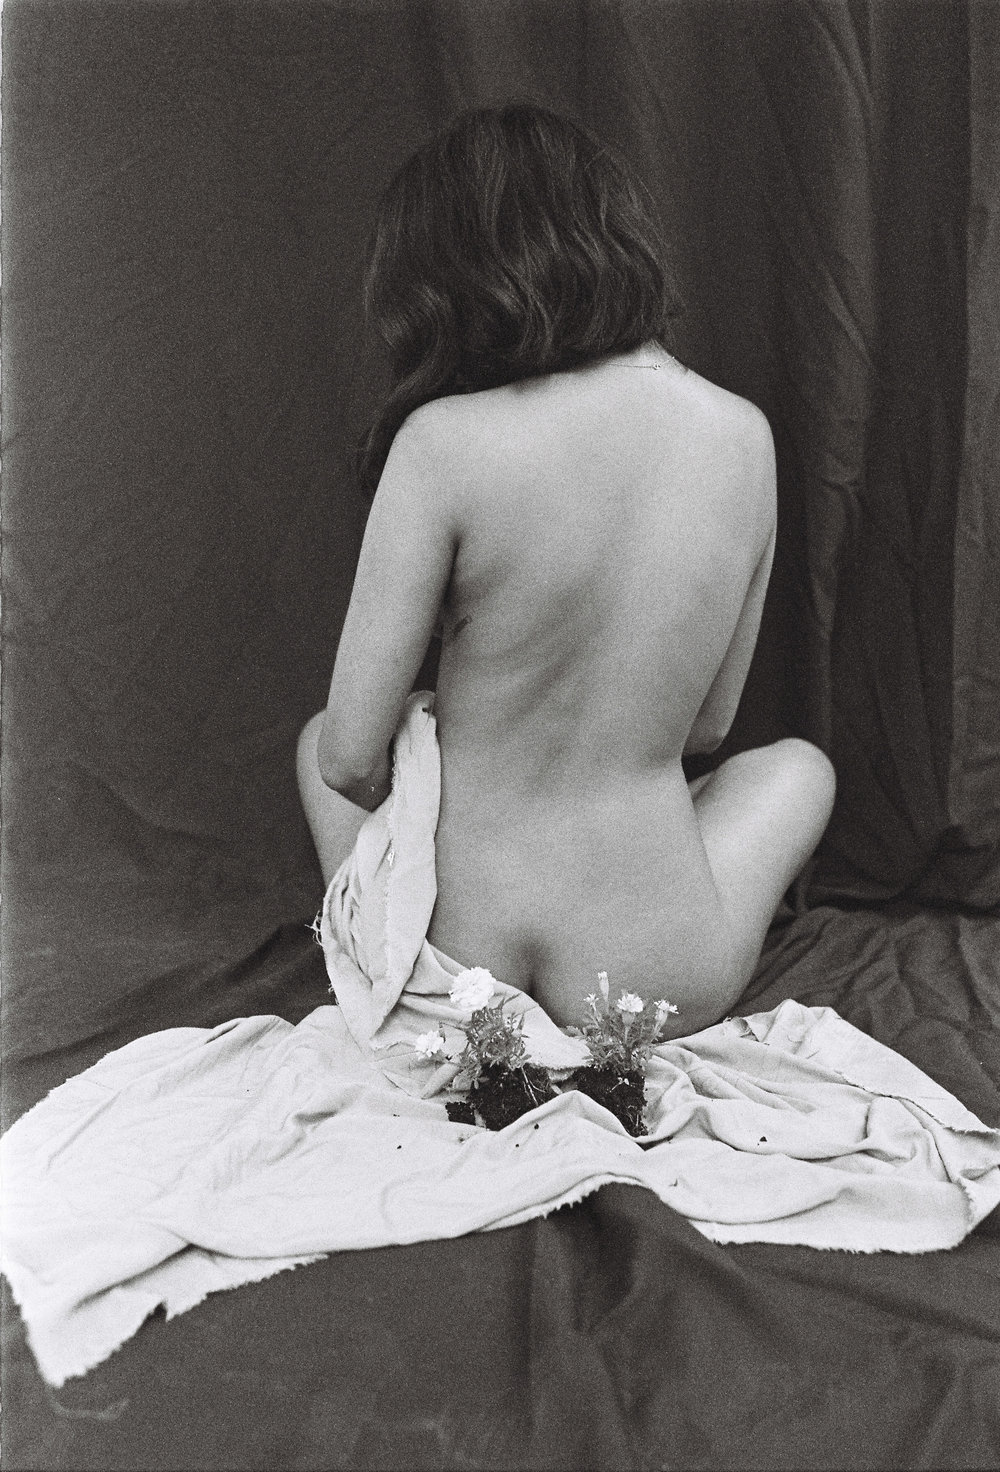 Tyra Naidoo nude from behind holding a blanket with with flowers laying behind her